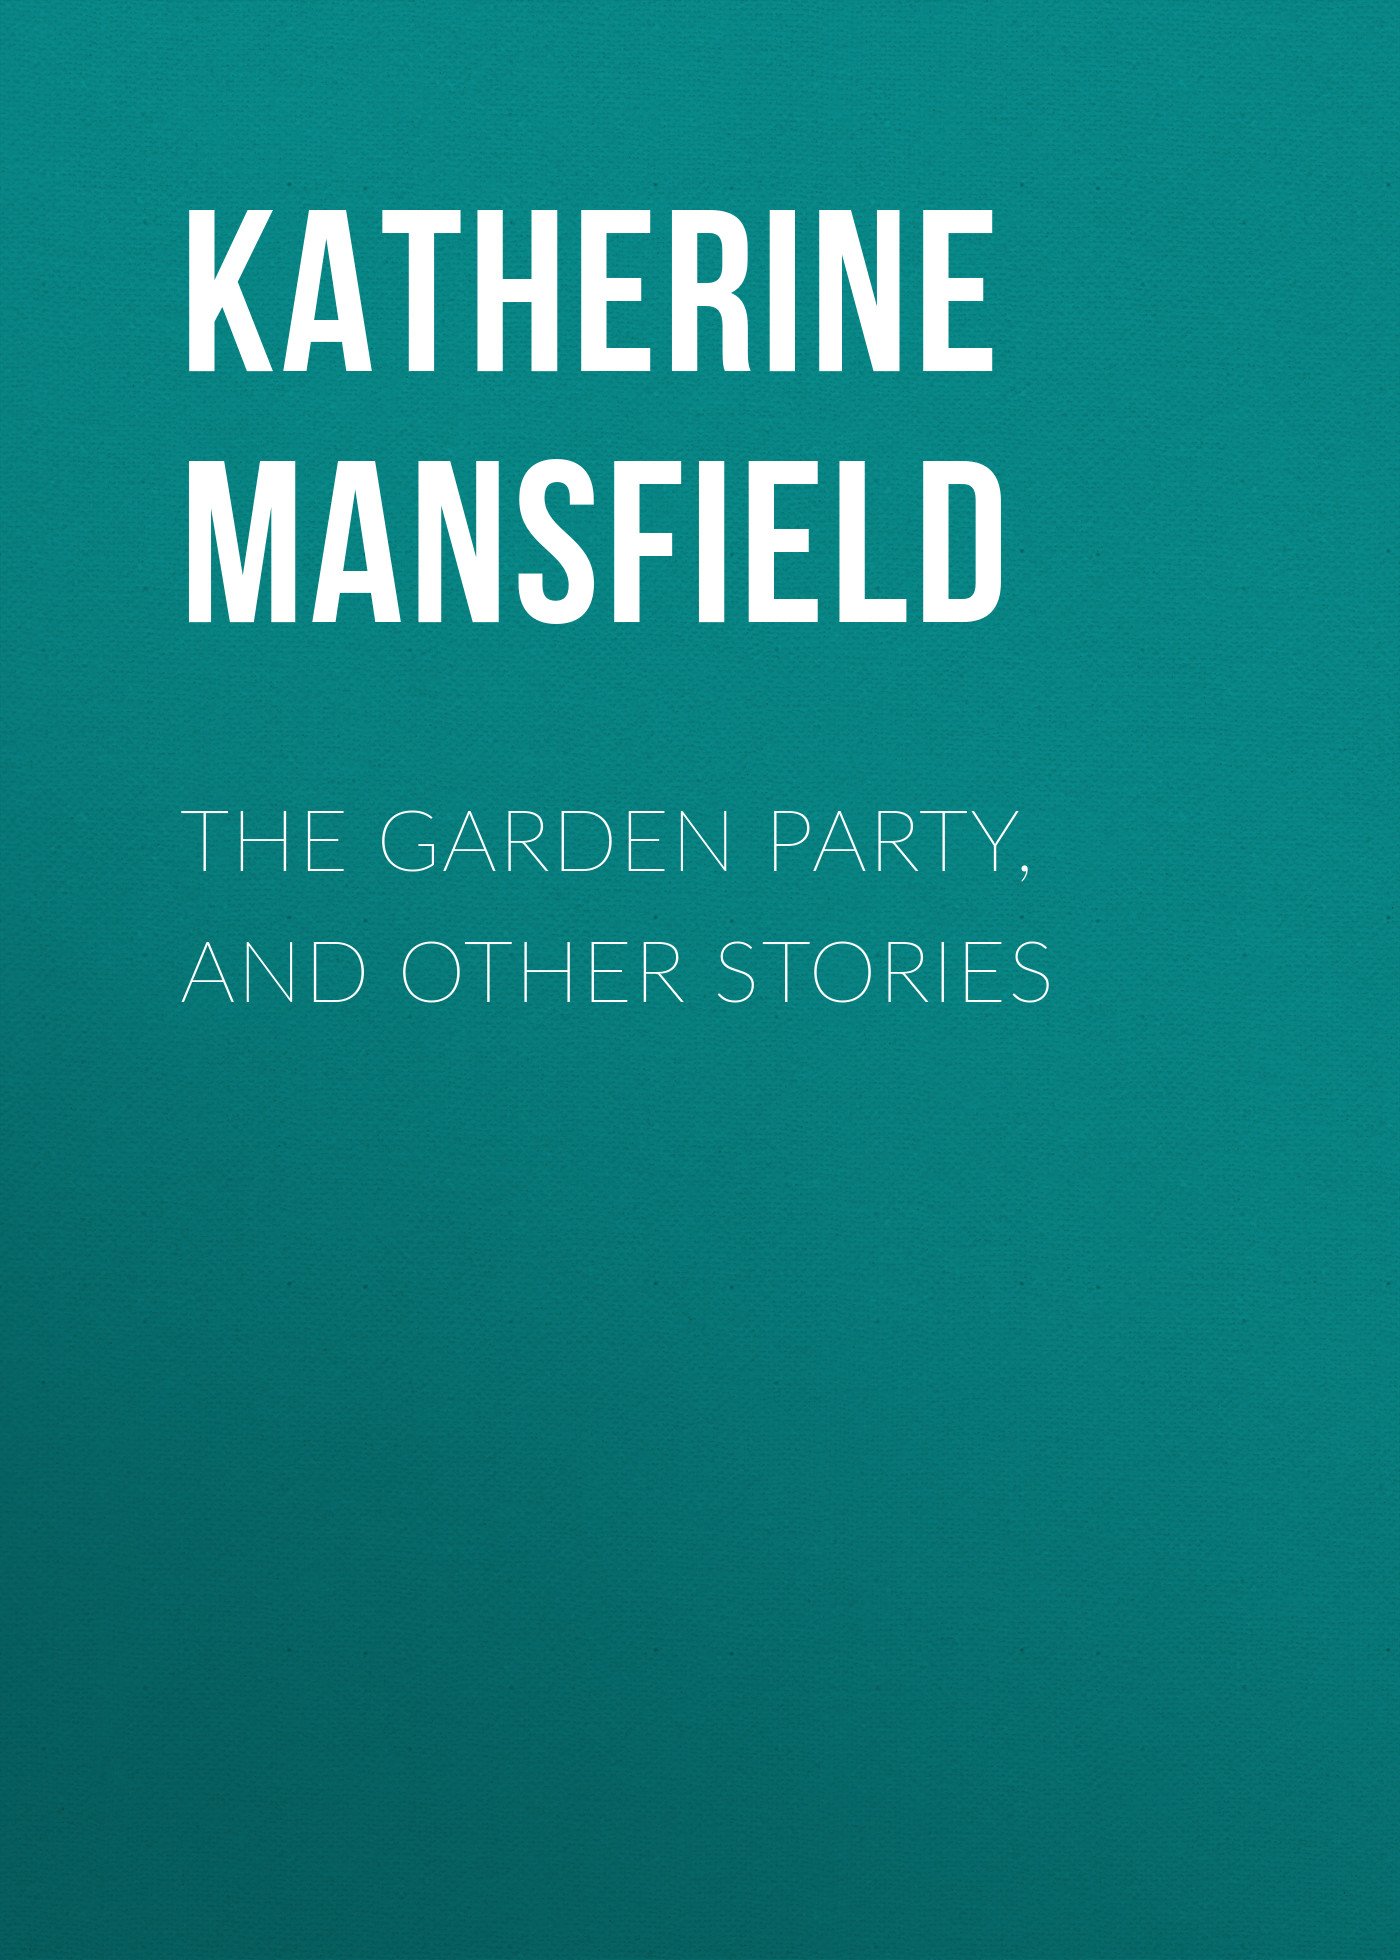 лучшая цена Katherine Mansfield The Garden Party, and Other Stories